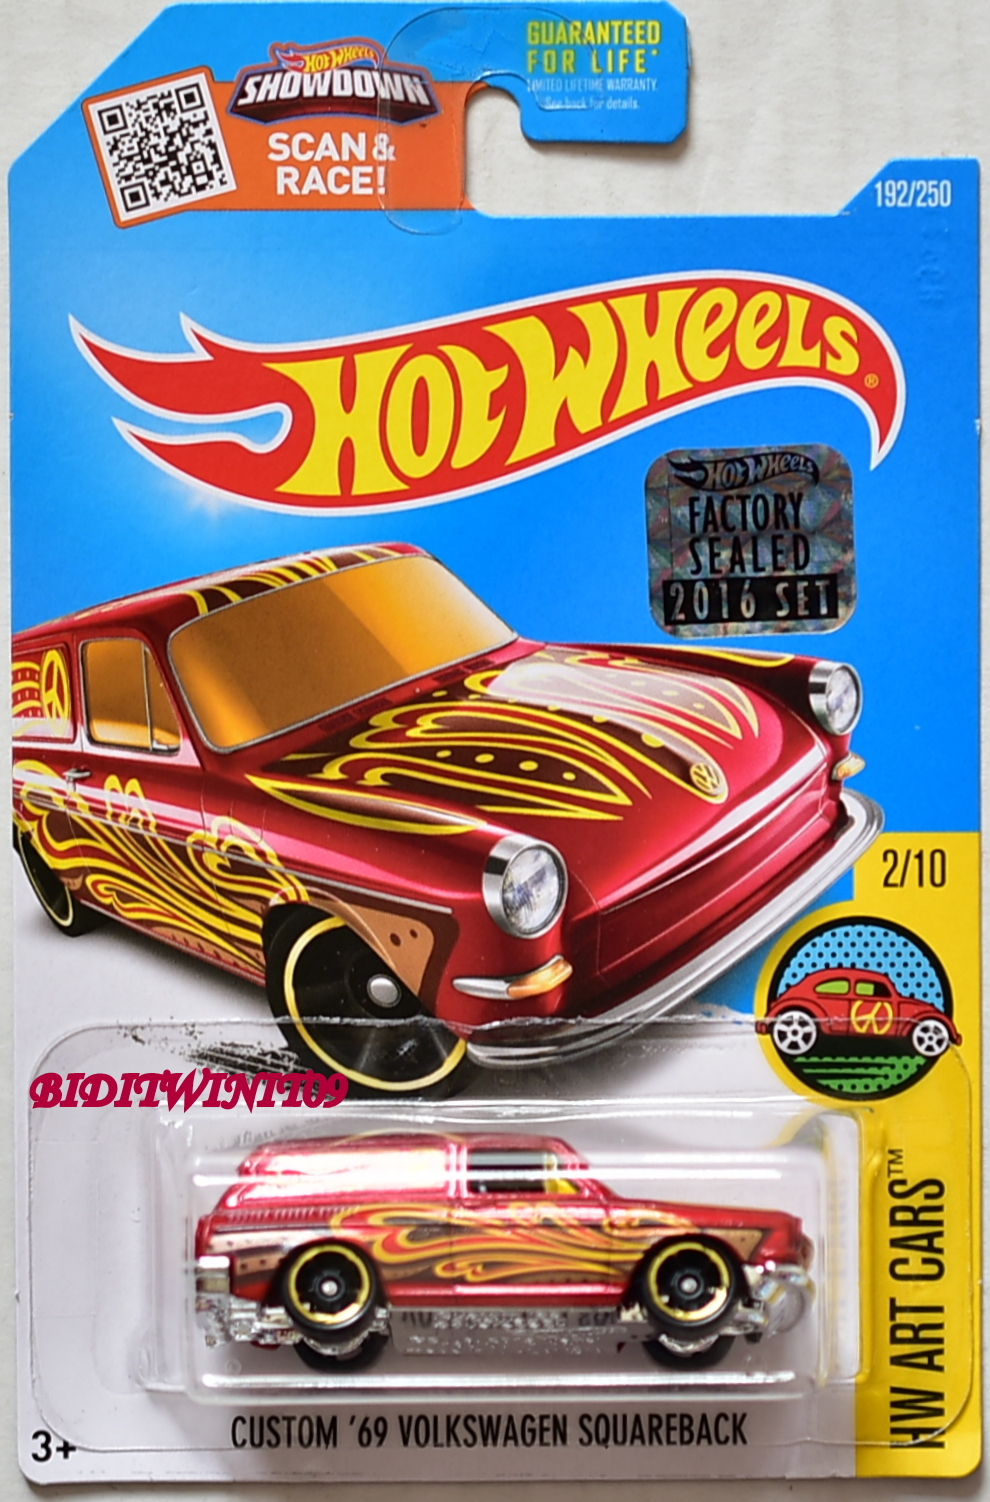 HOT WHEELS 2016 ART CARS CUSTOM '69 VOLKSWAGEN SQUAREBACK RED FACTORY SEALED E+